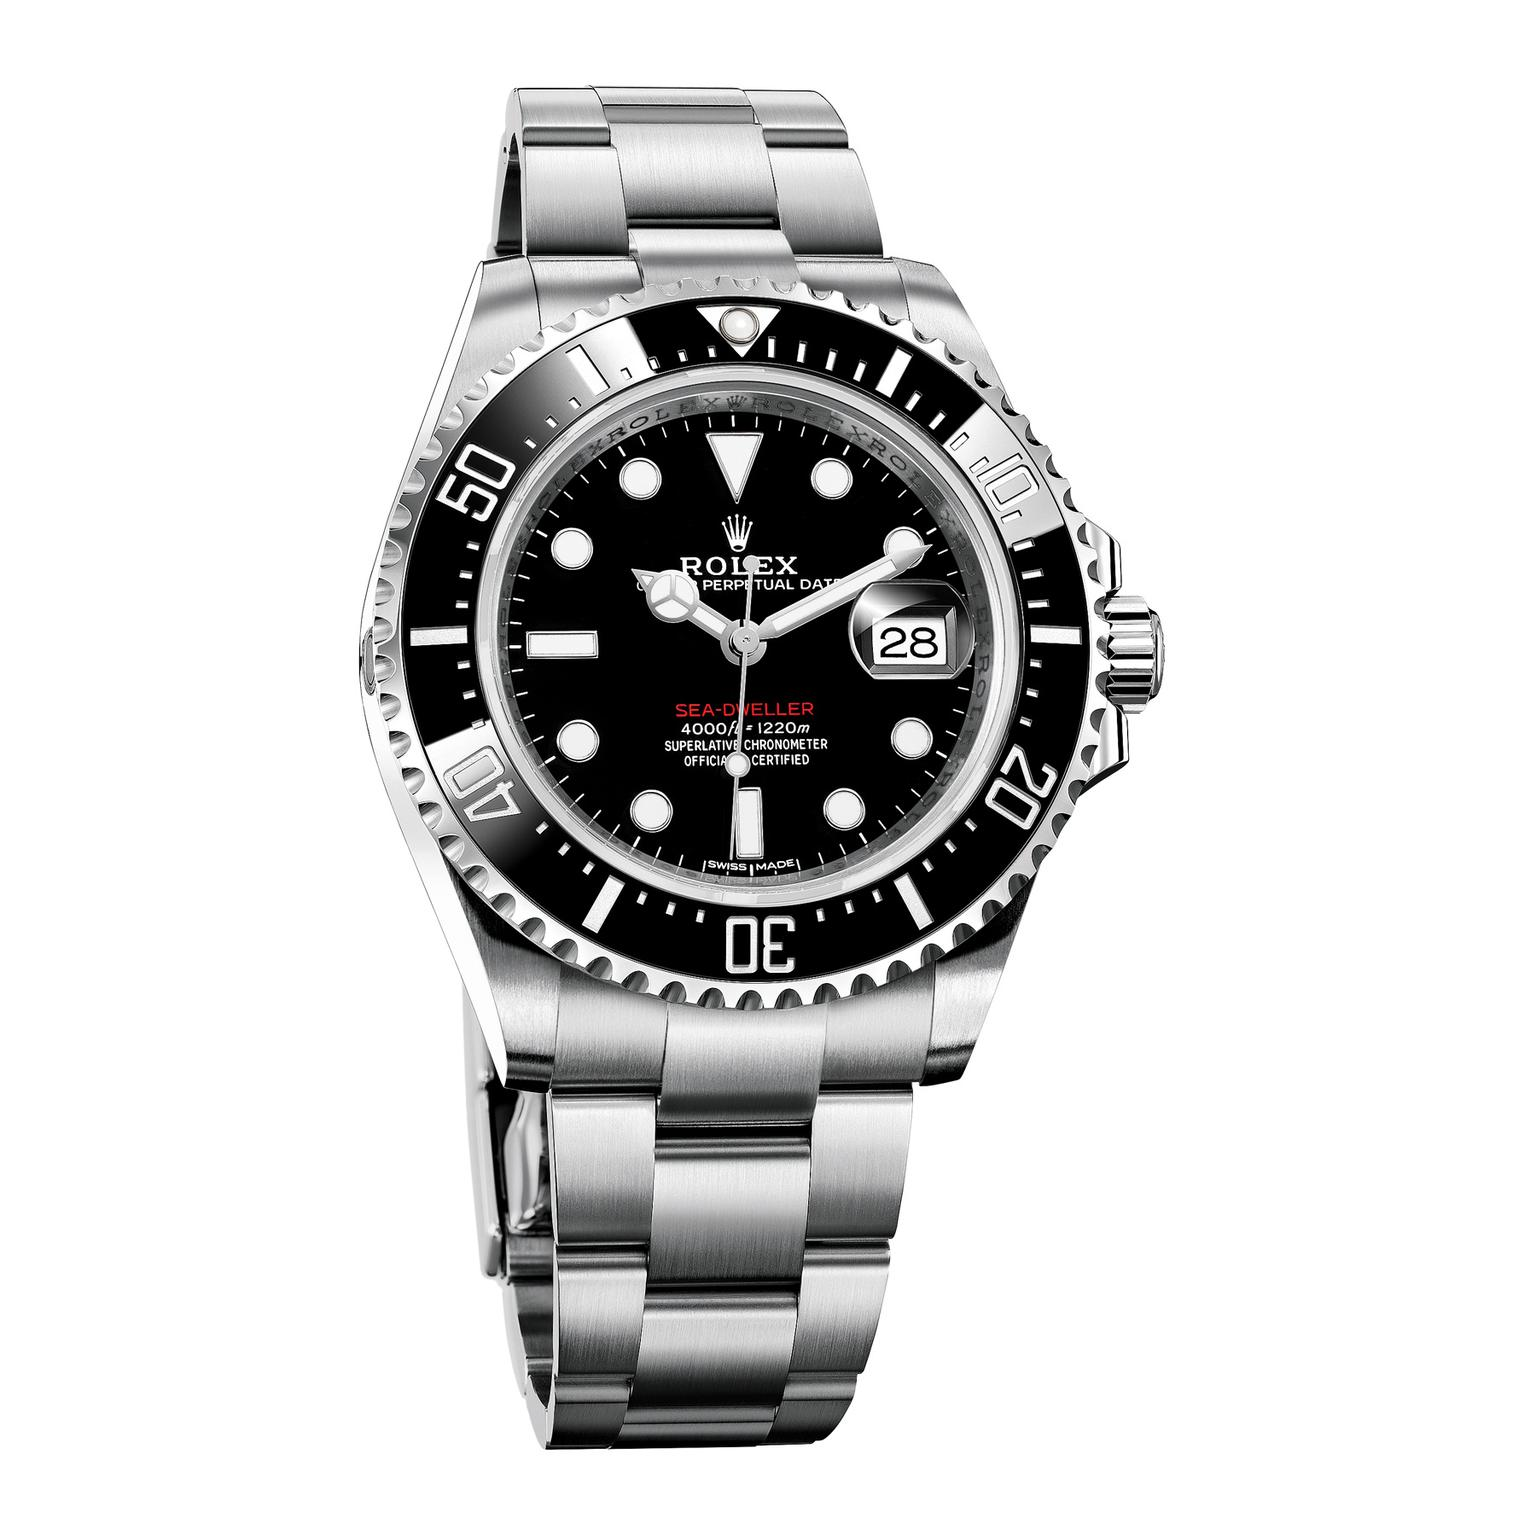 Rolex Oyster Perpetual Sea-Dweller watch